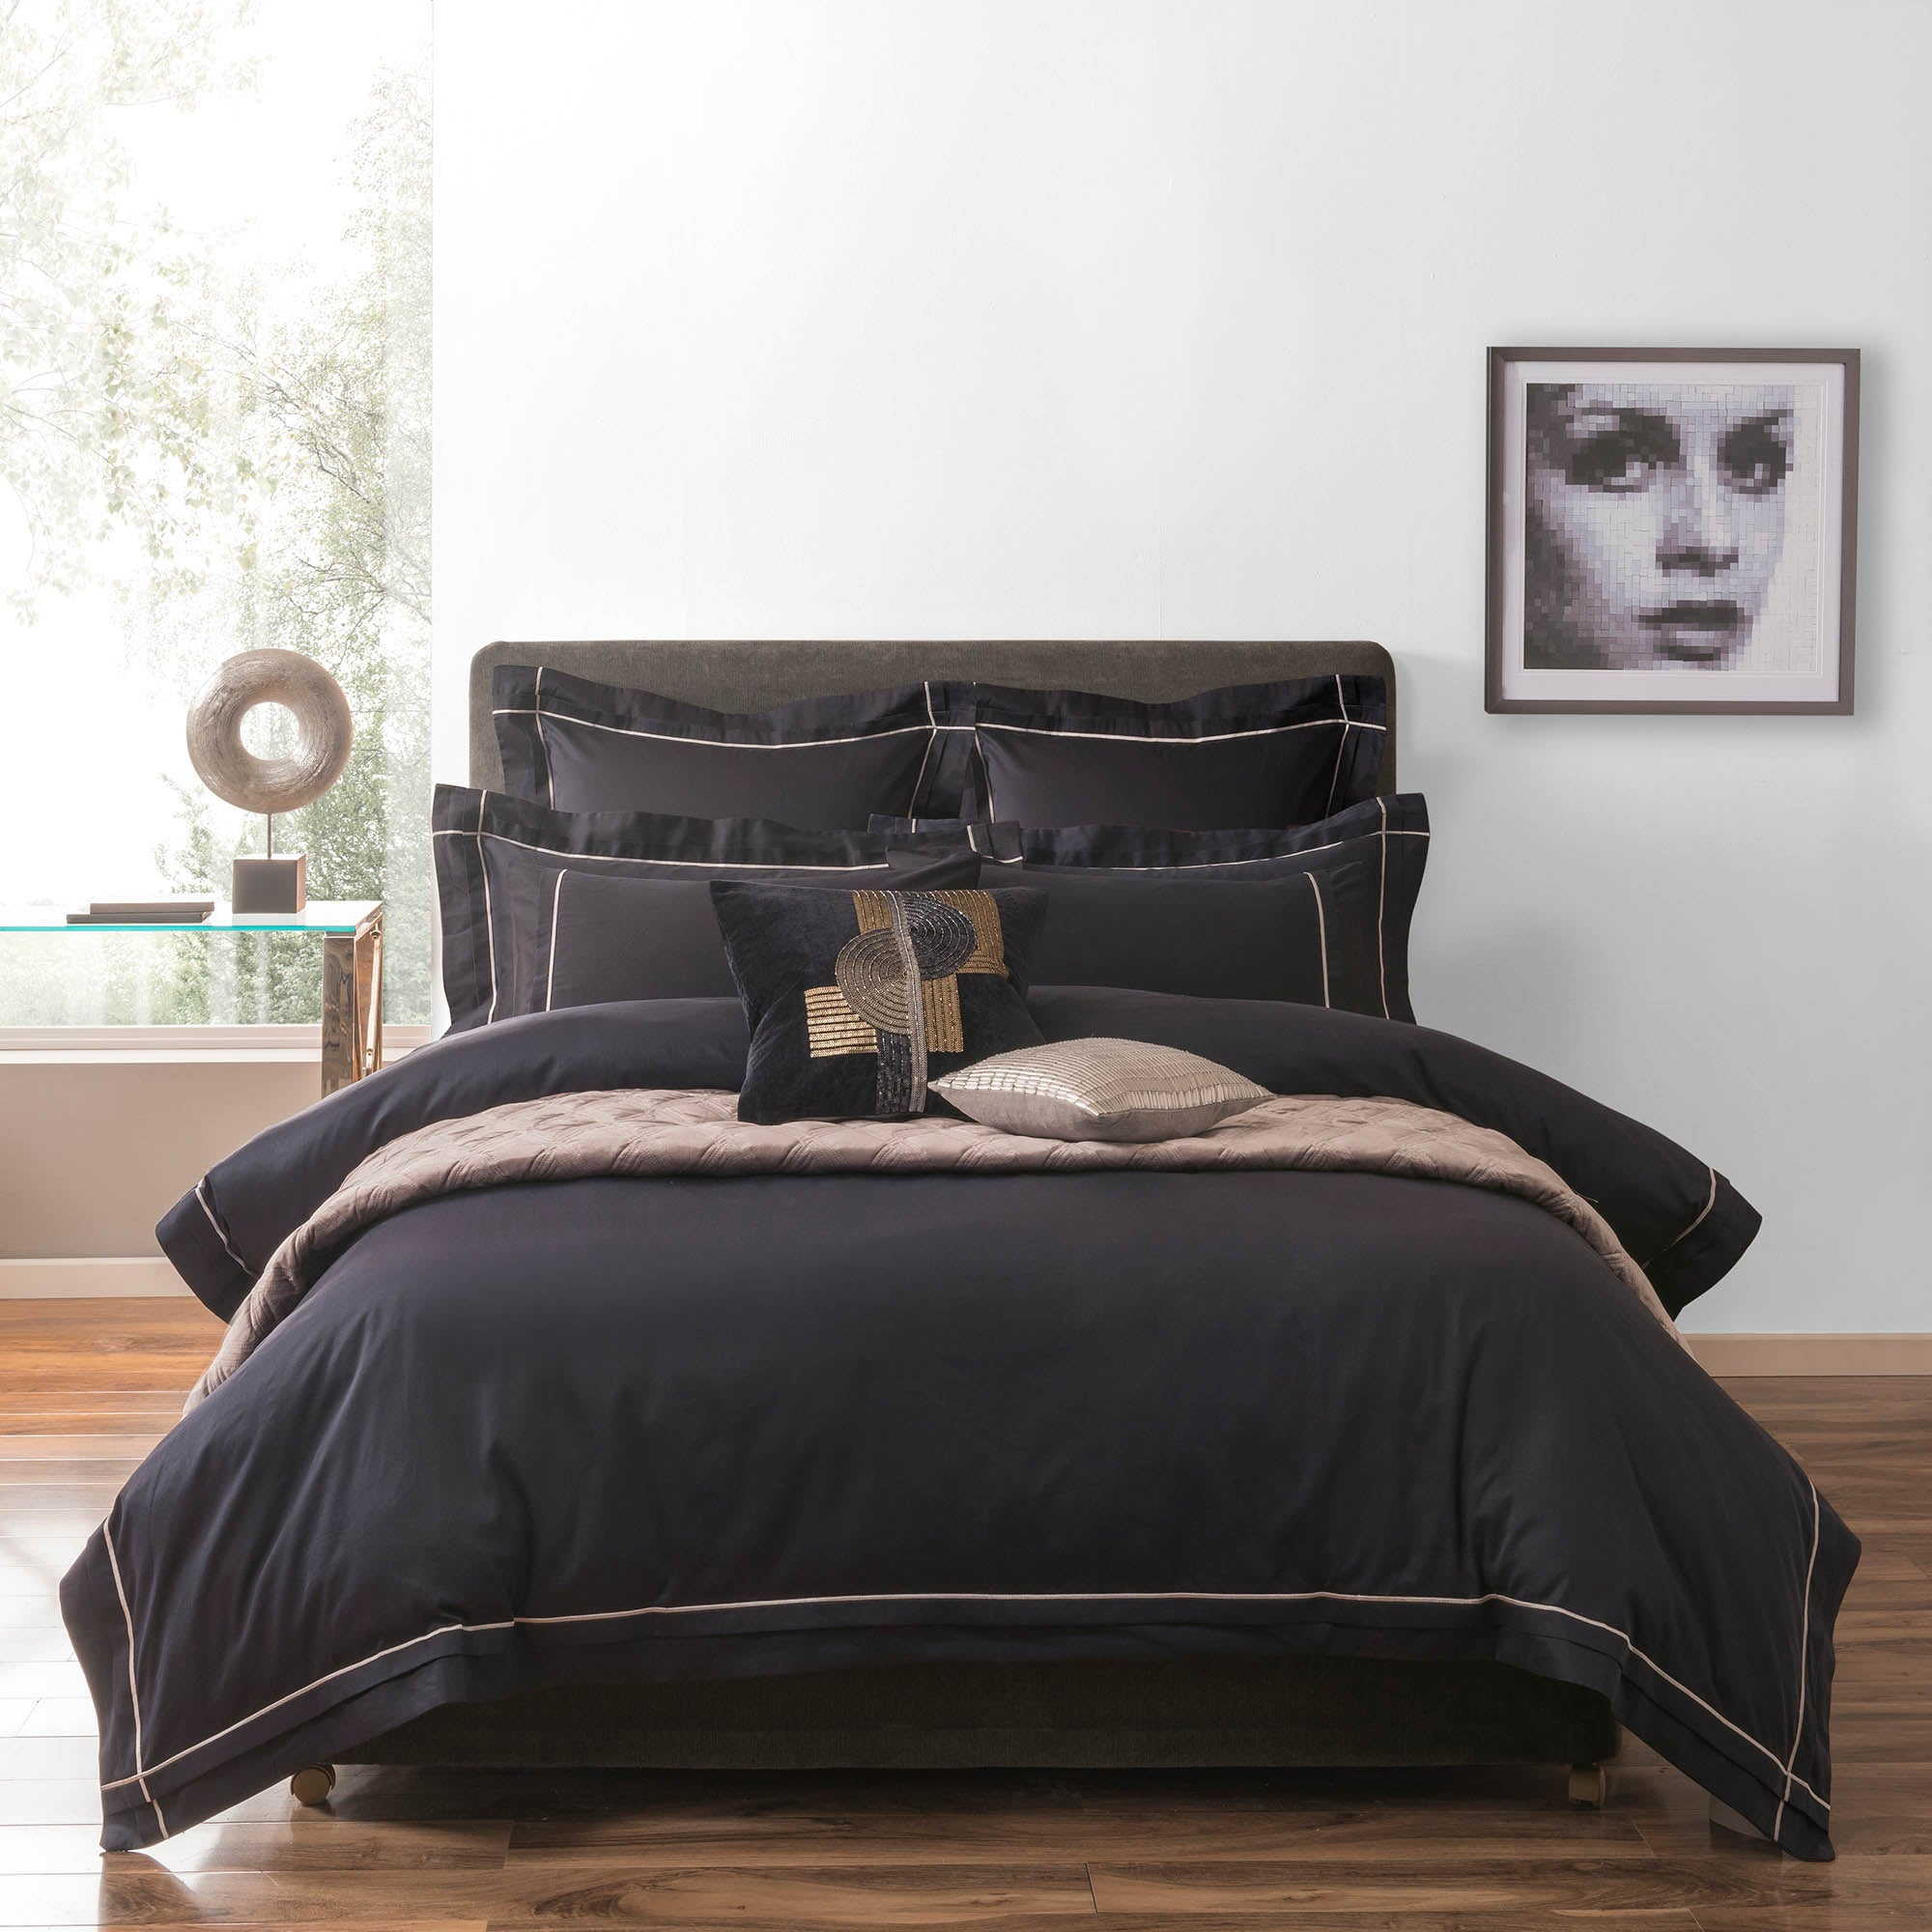 5A Fifth Avenue Portland 300 Thread Count Navy Bed Linen Collection